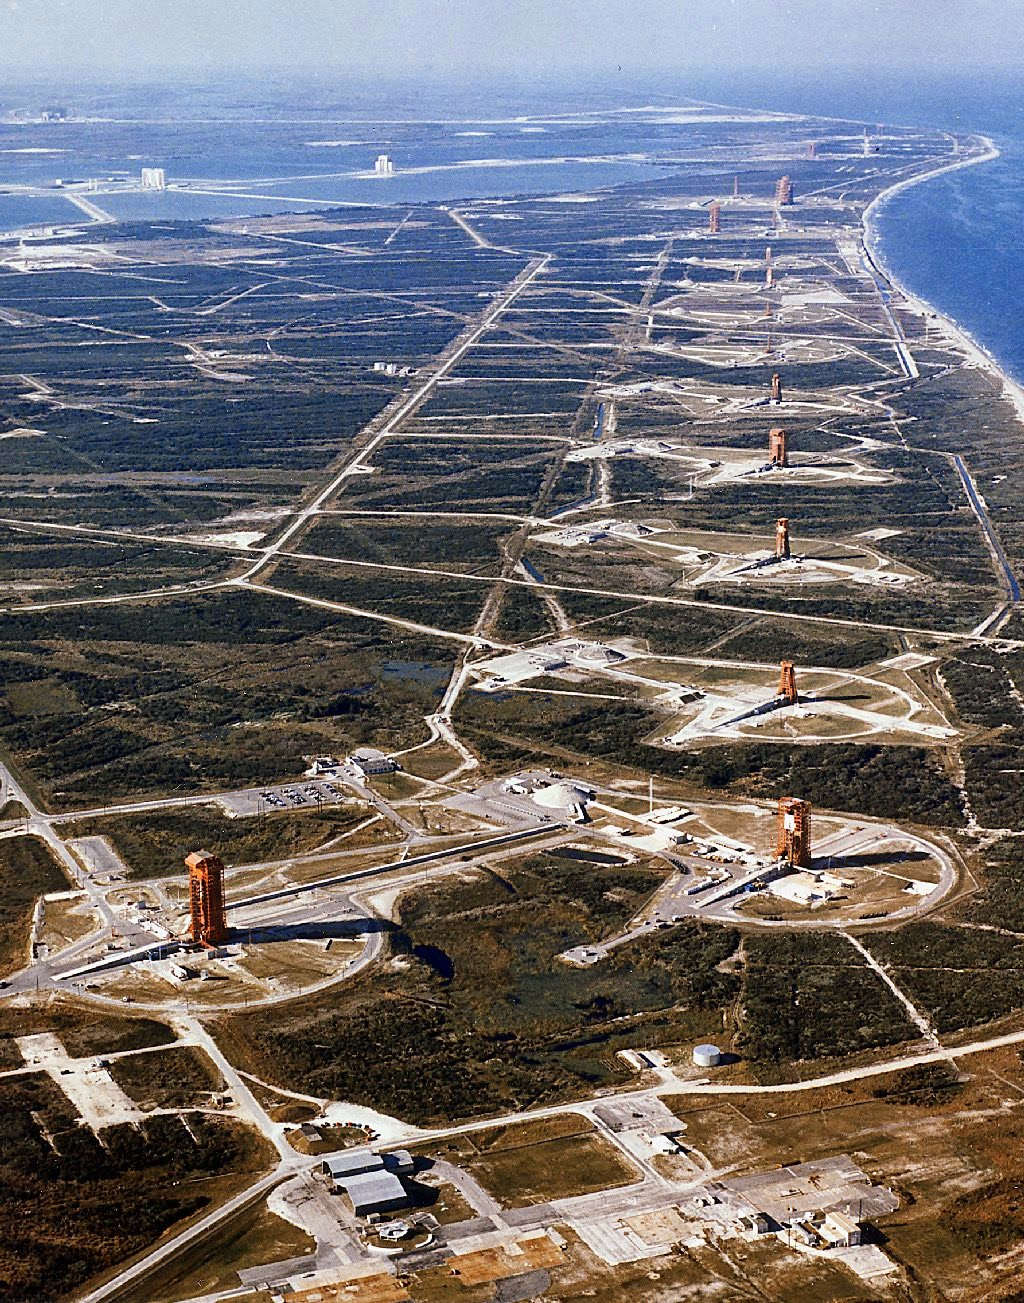 Ultimate Collection Of Rare Historical Photos. A Big Piece Of History (200 Pictures) - Cape Canaveral Air Force Station